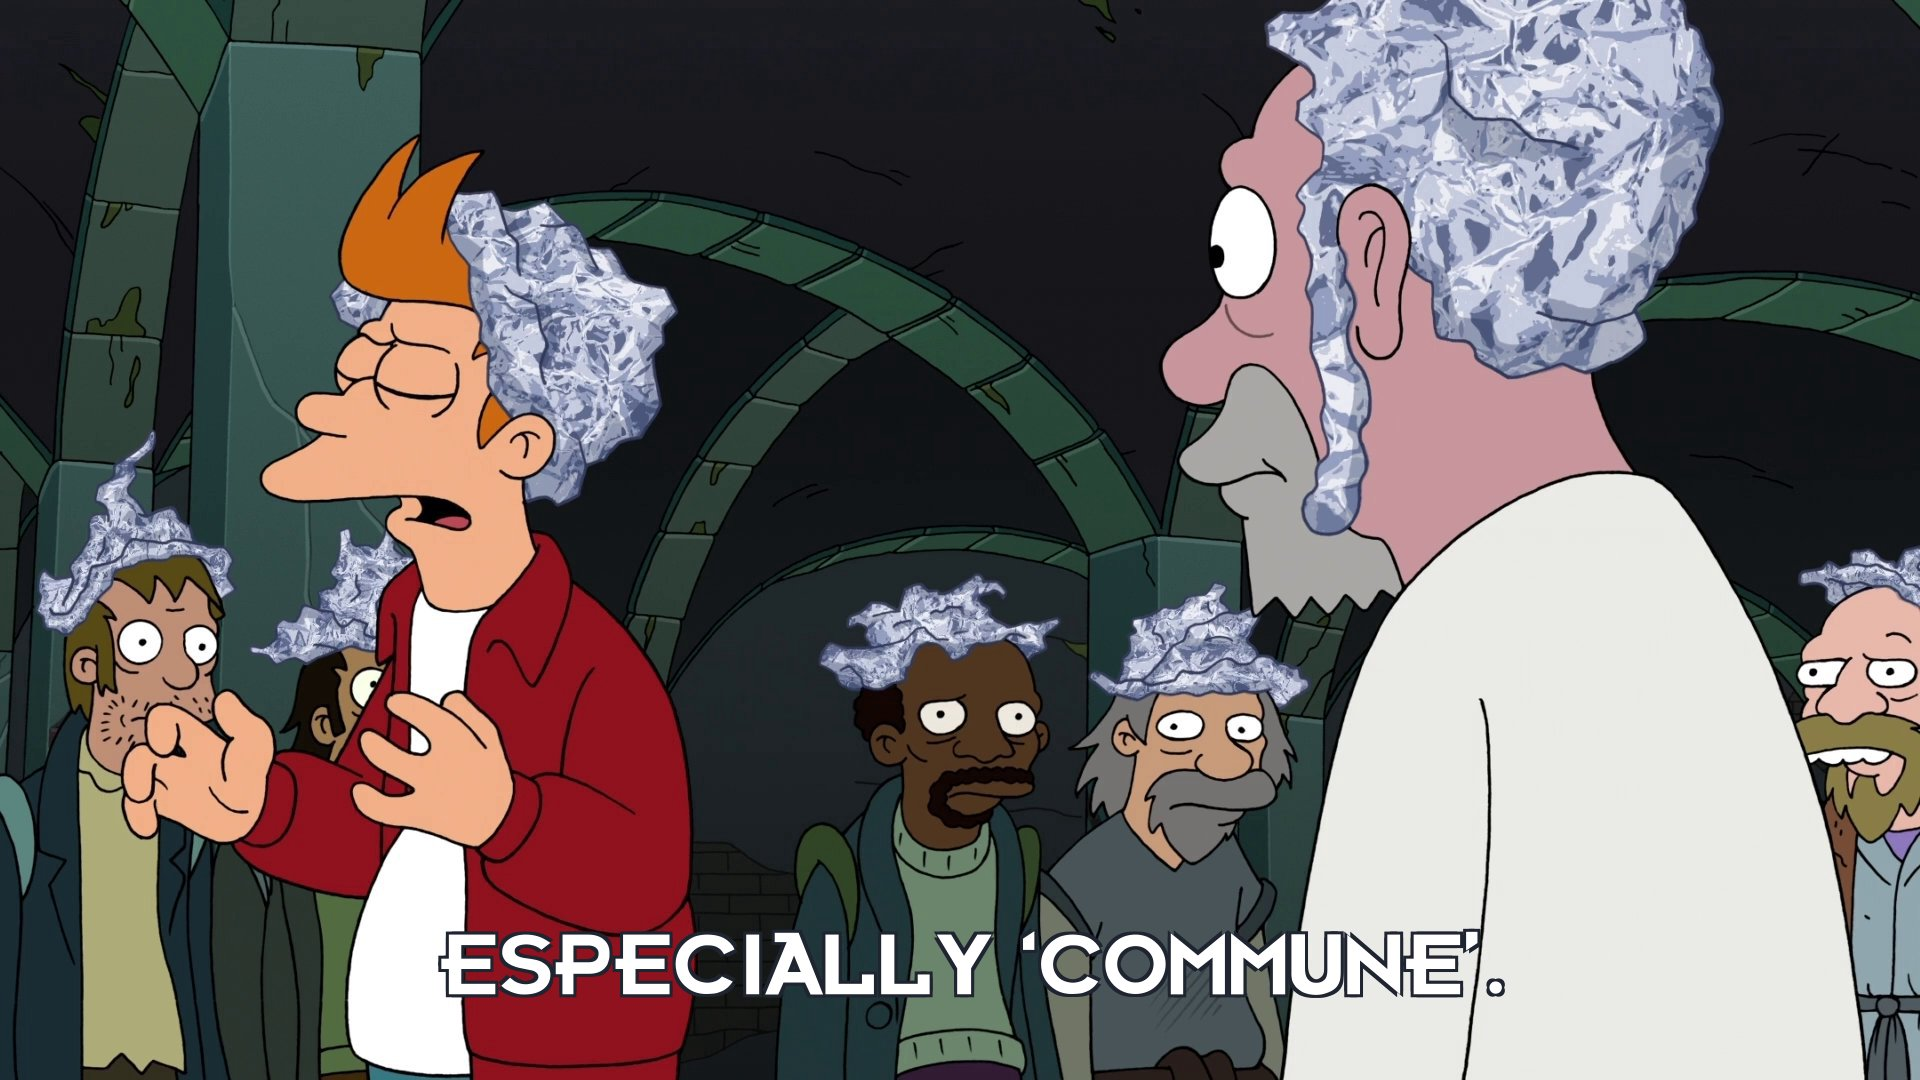 Philip J Fry: Especially 'commune'.